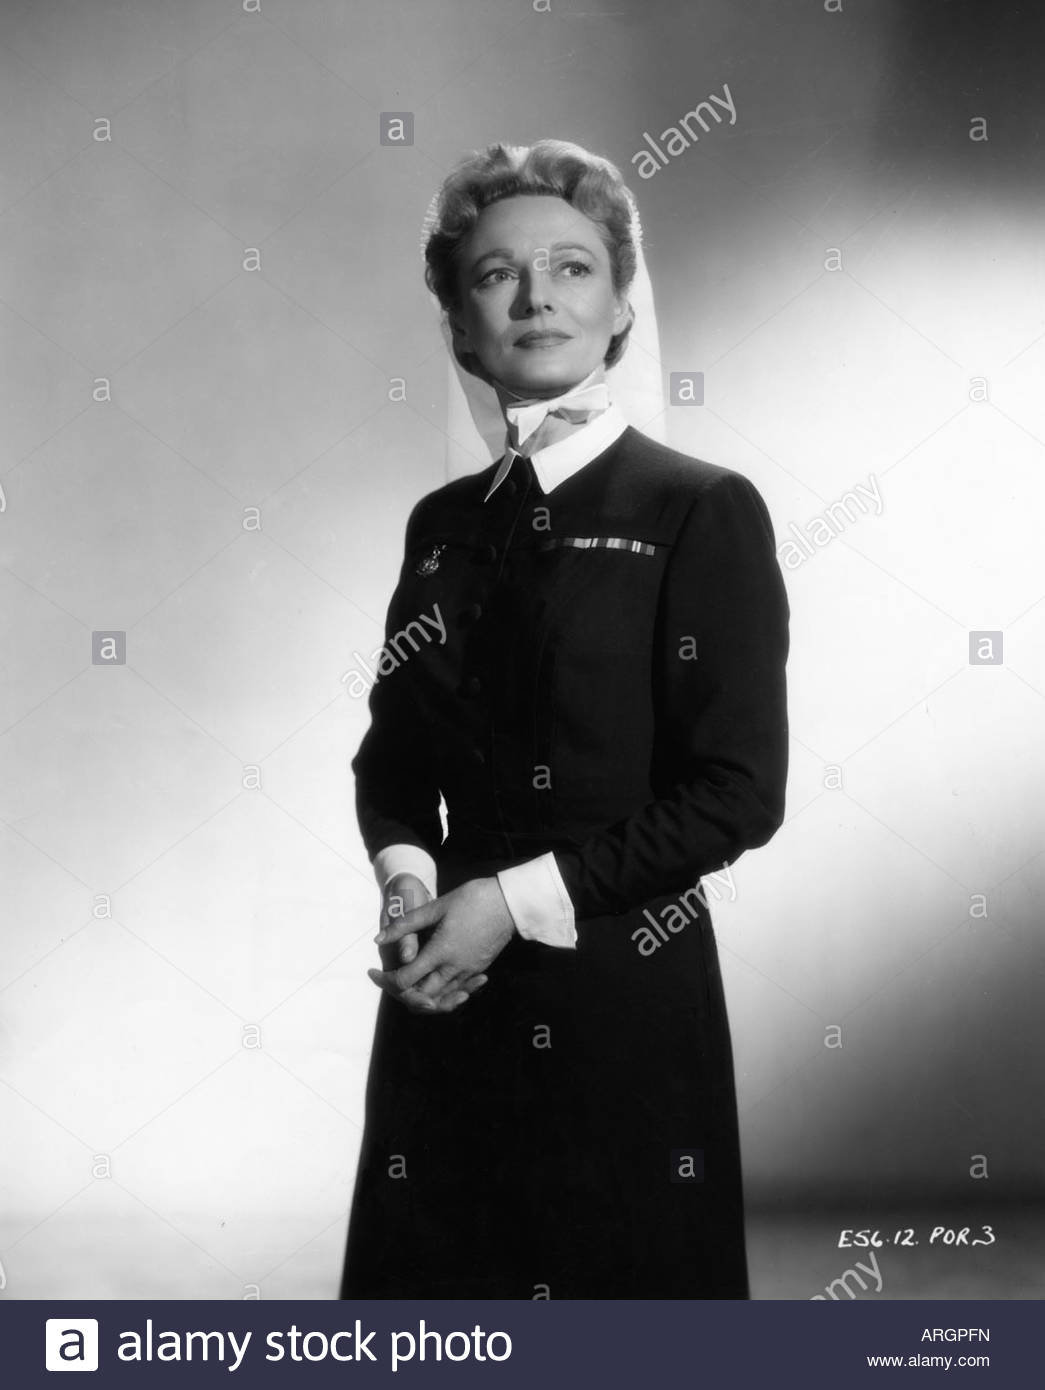 Neagle, Anna, 20.10.1904 - 3.6.1986, British actress, half length, PR photo for movie 'No Time for Tears', - Stock Image